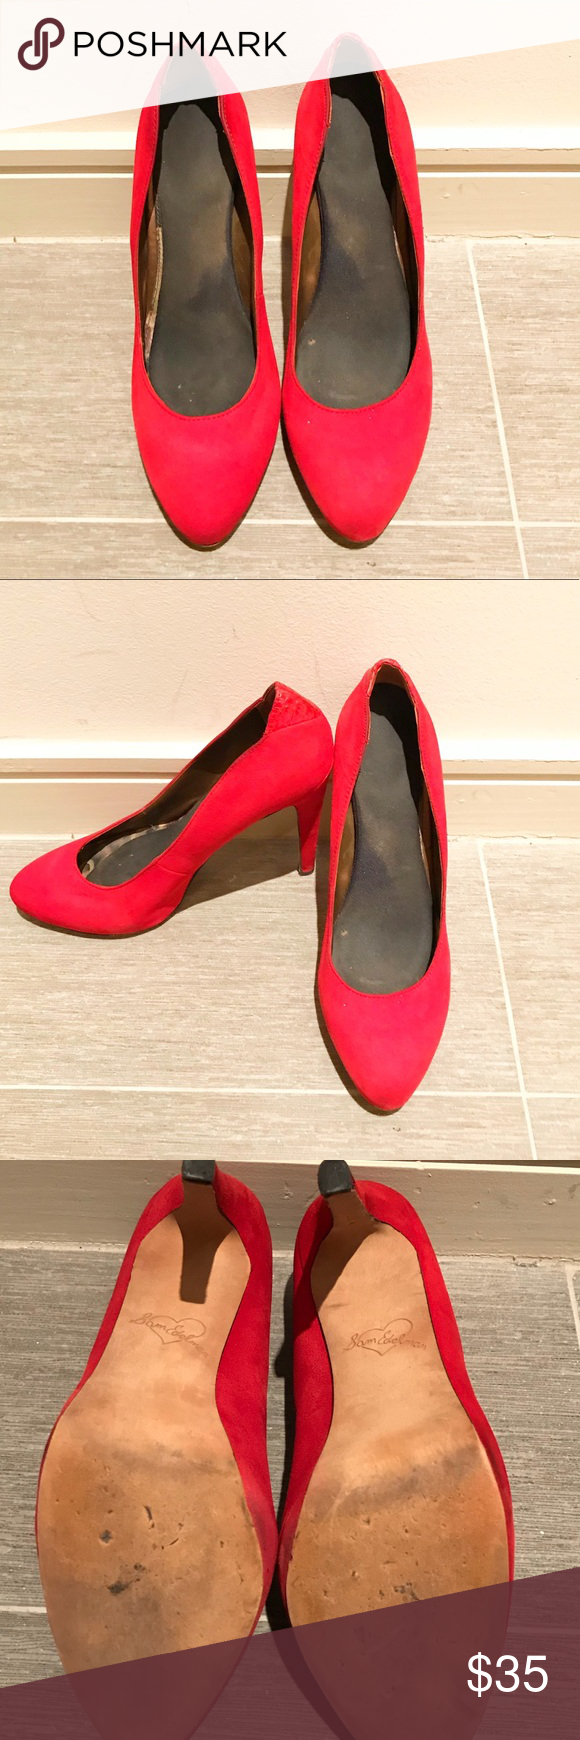 76d23c2d714aad Sam Edelman Celia   Dea Red Suede Pumps SAM EDELMAN Red Suede   Leather  Celia classic